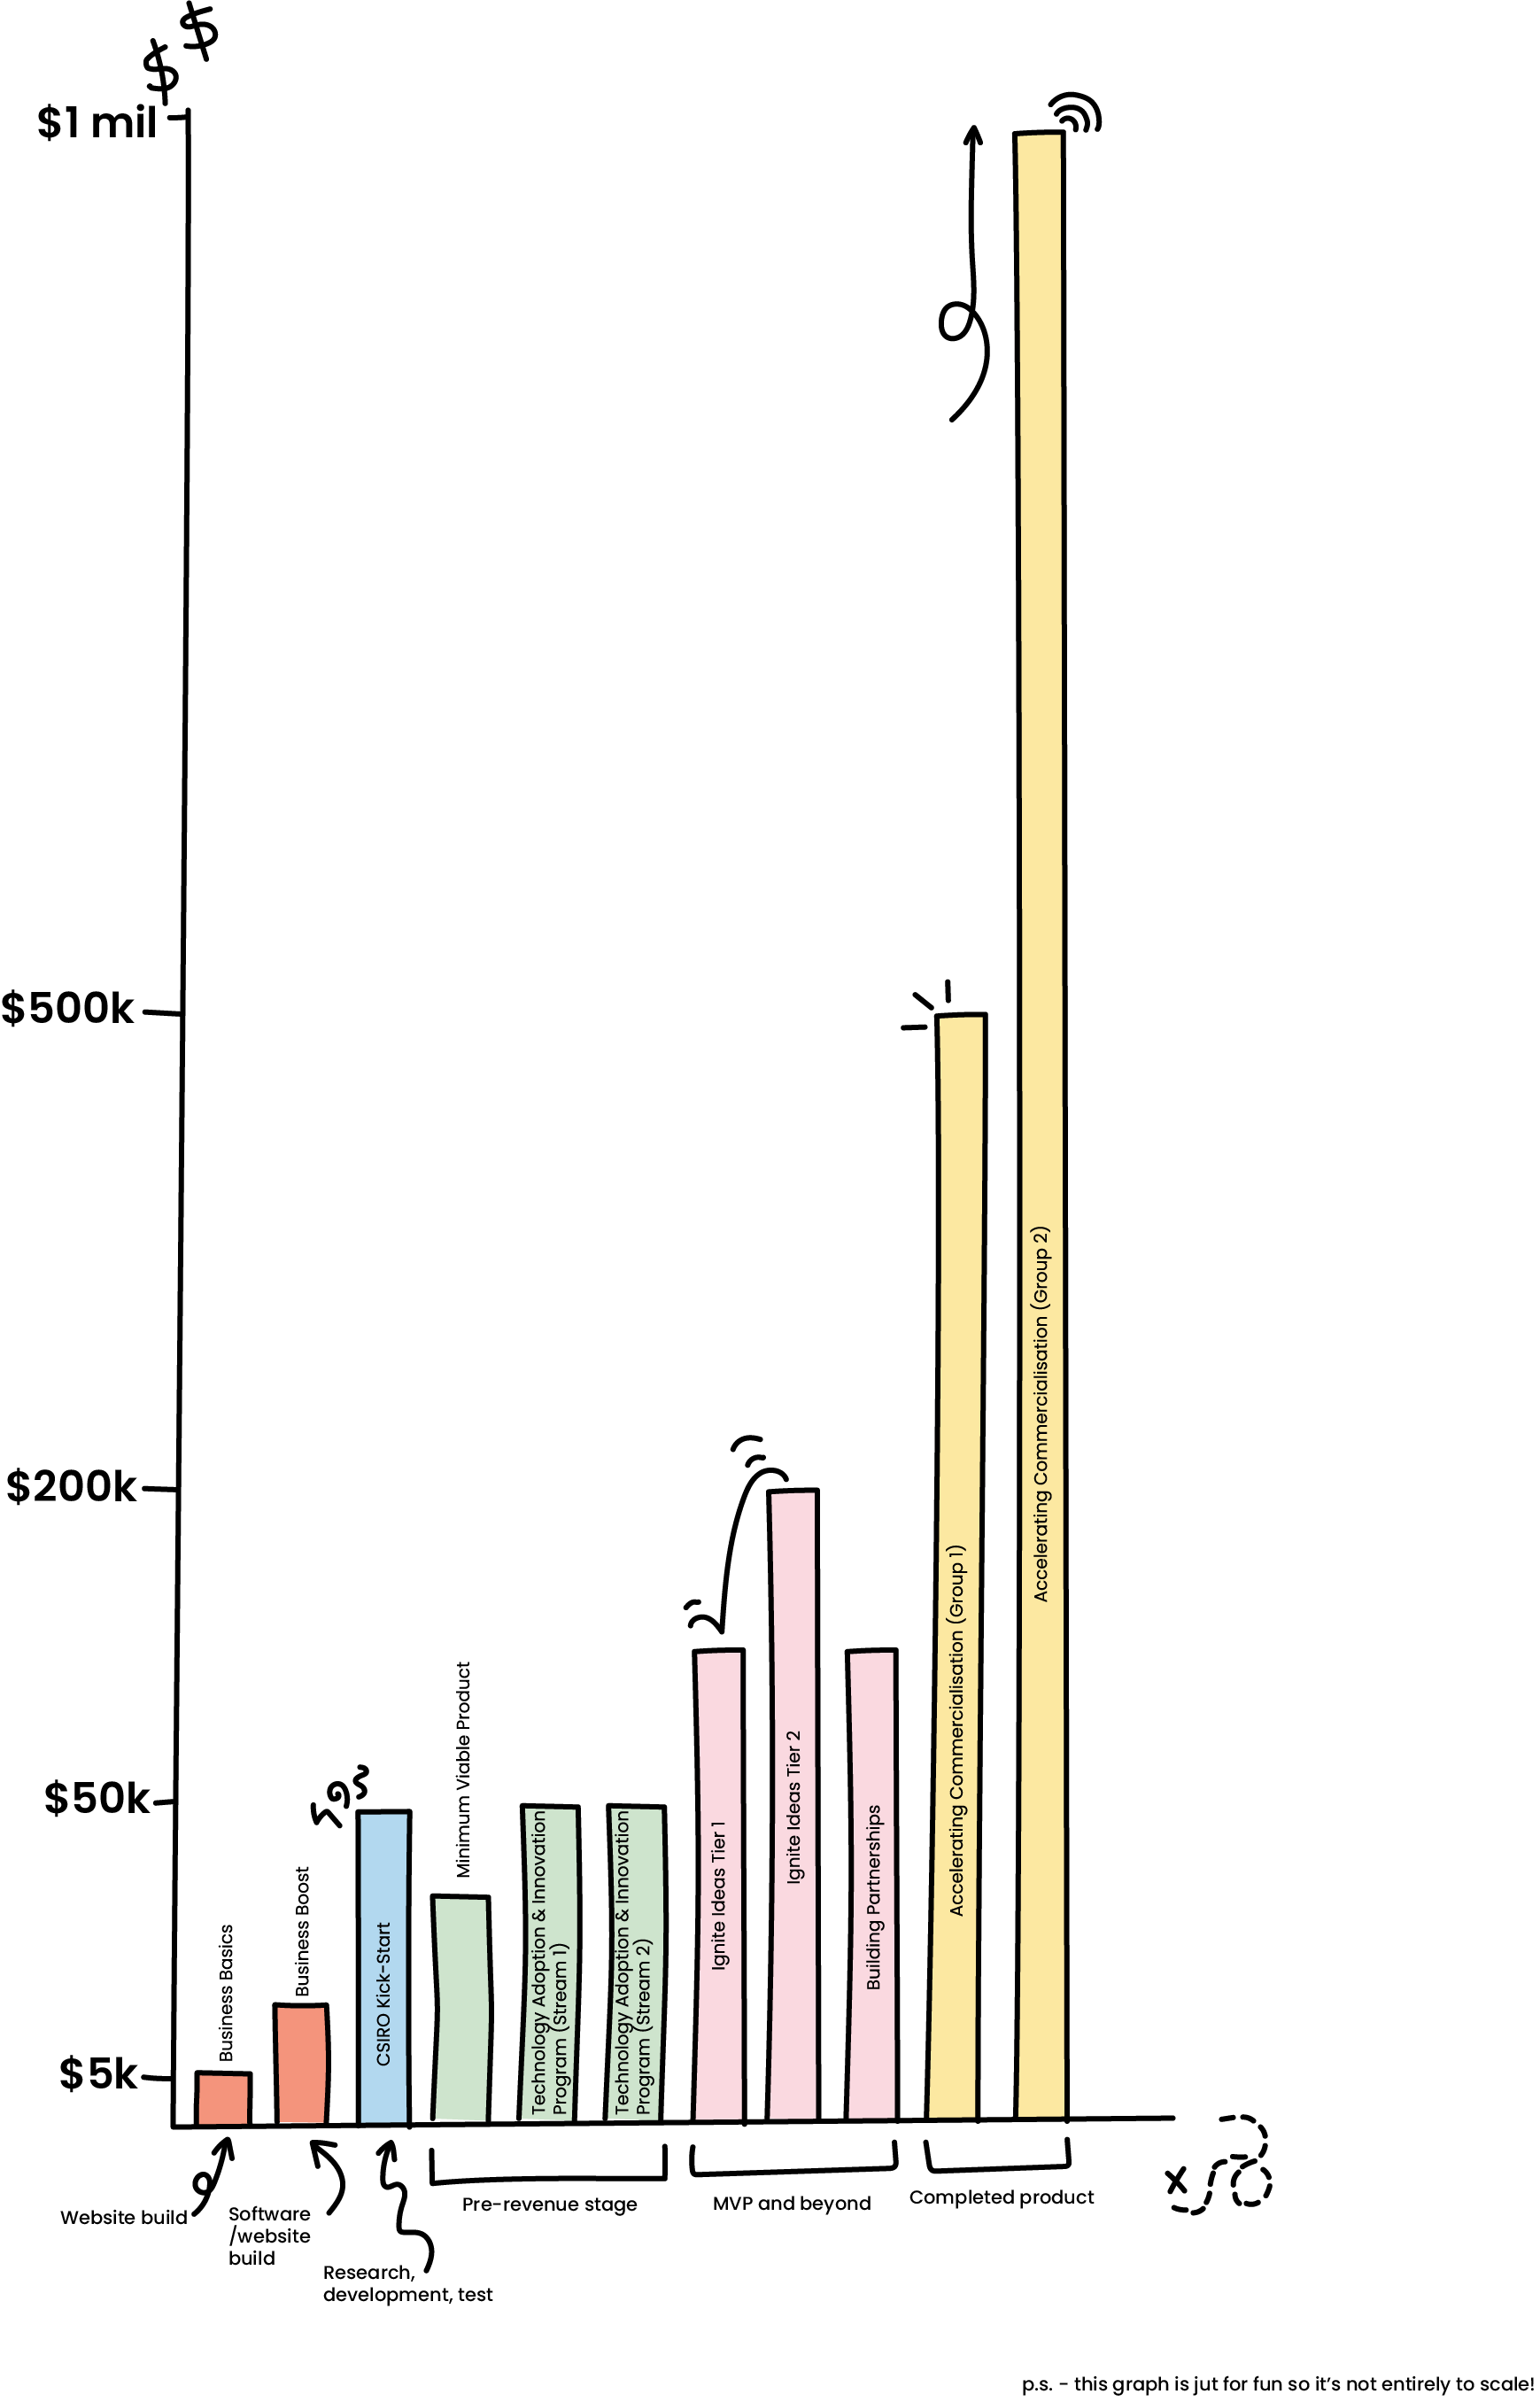 A graph showing the different grants available and how much money is available